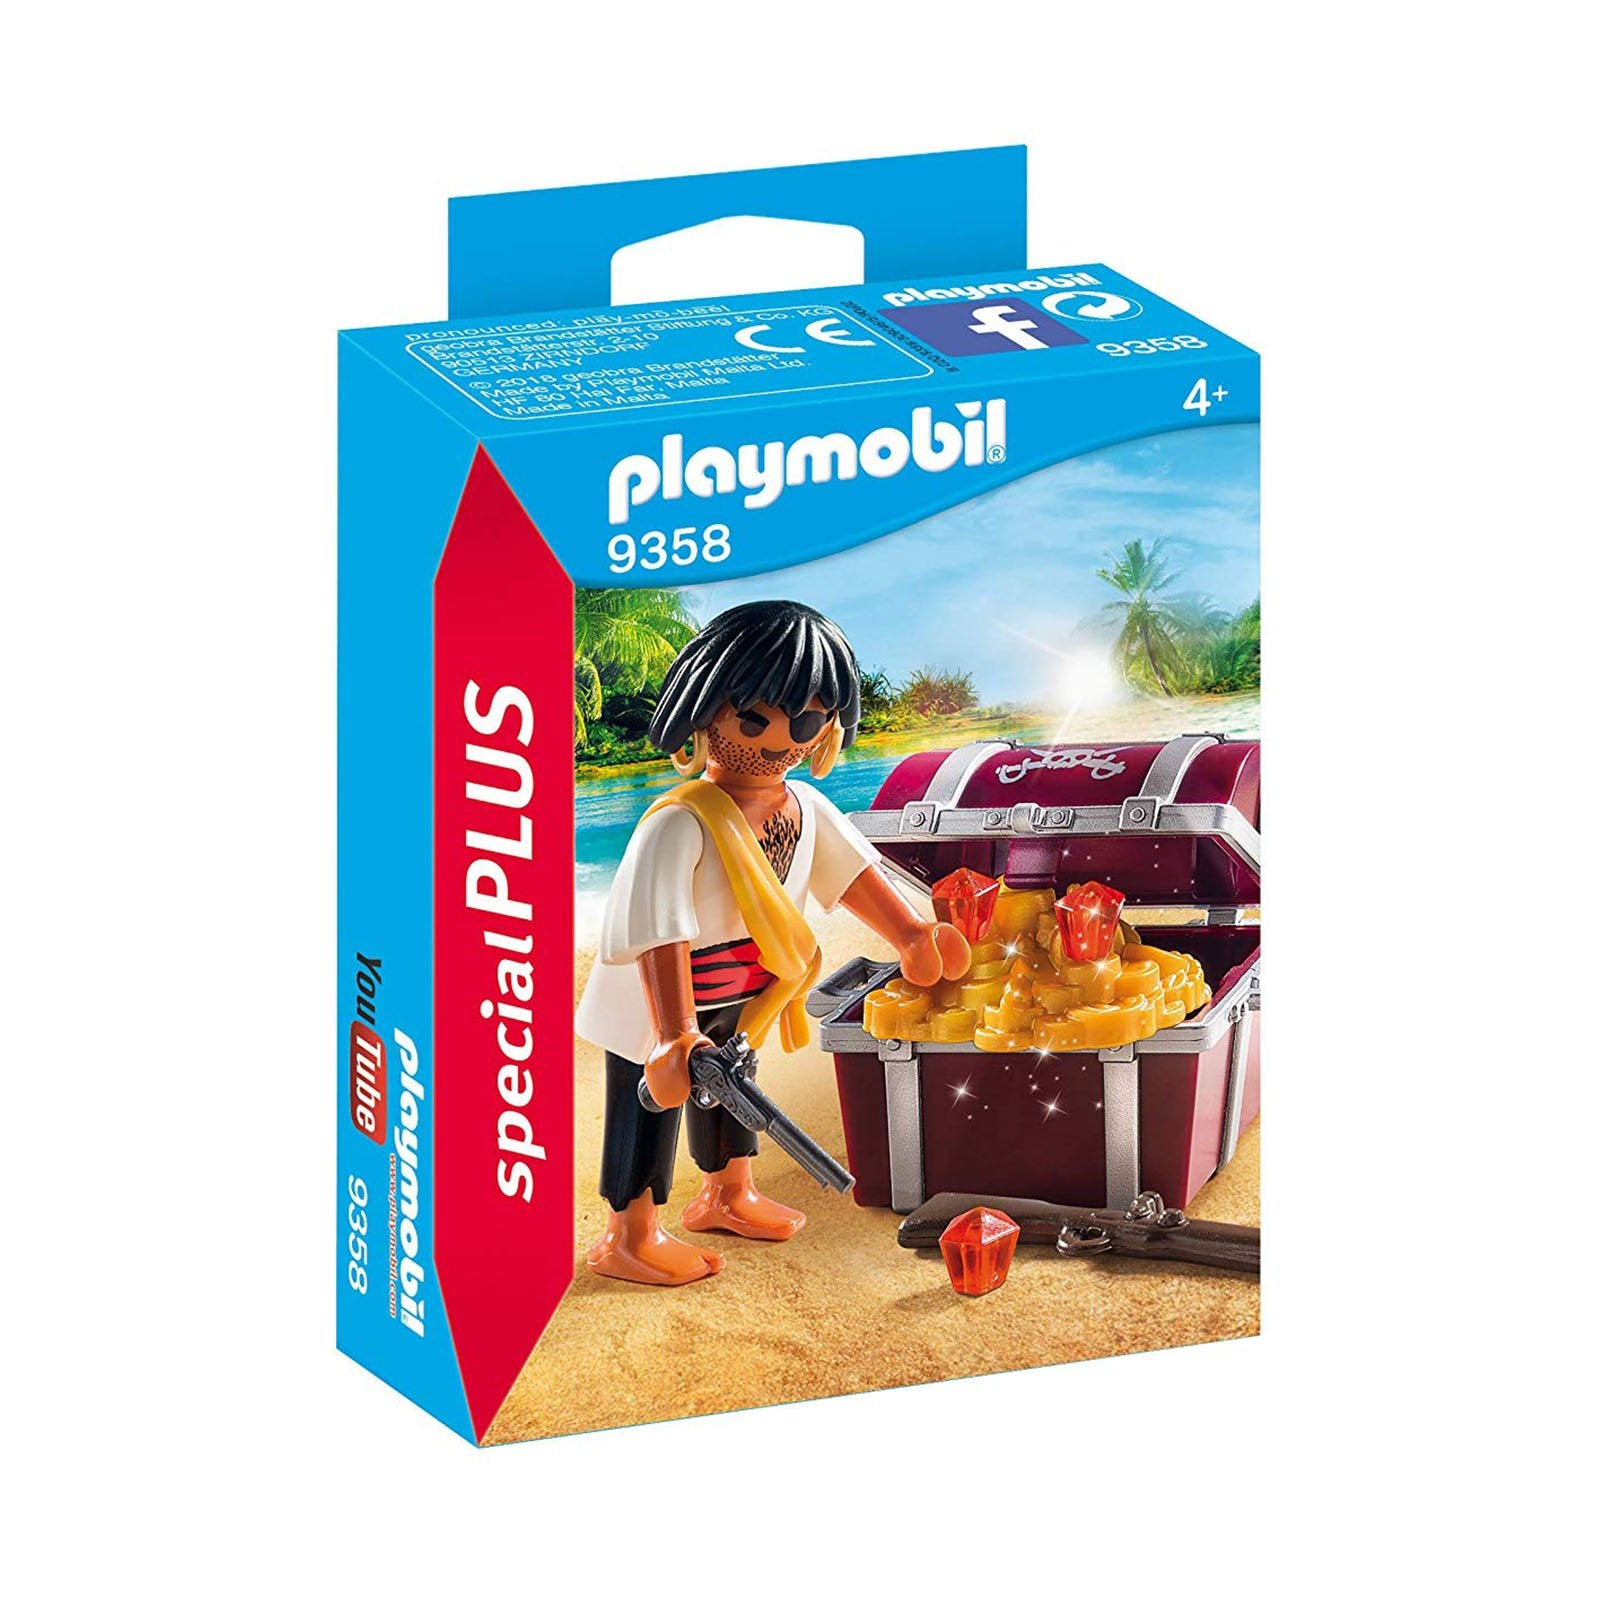 Playmobil Pirate With Treasure Chest Building Set 9358